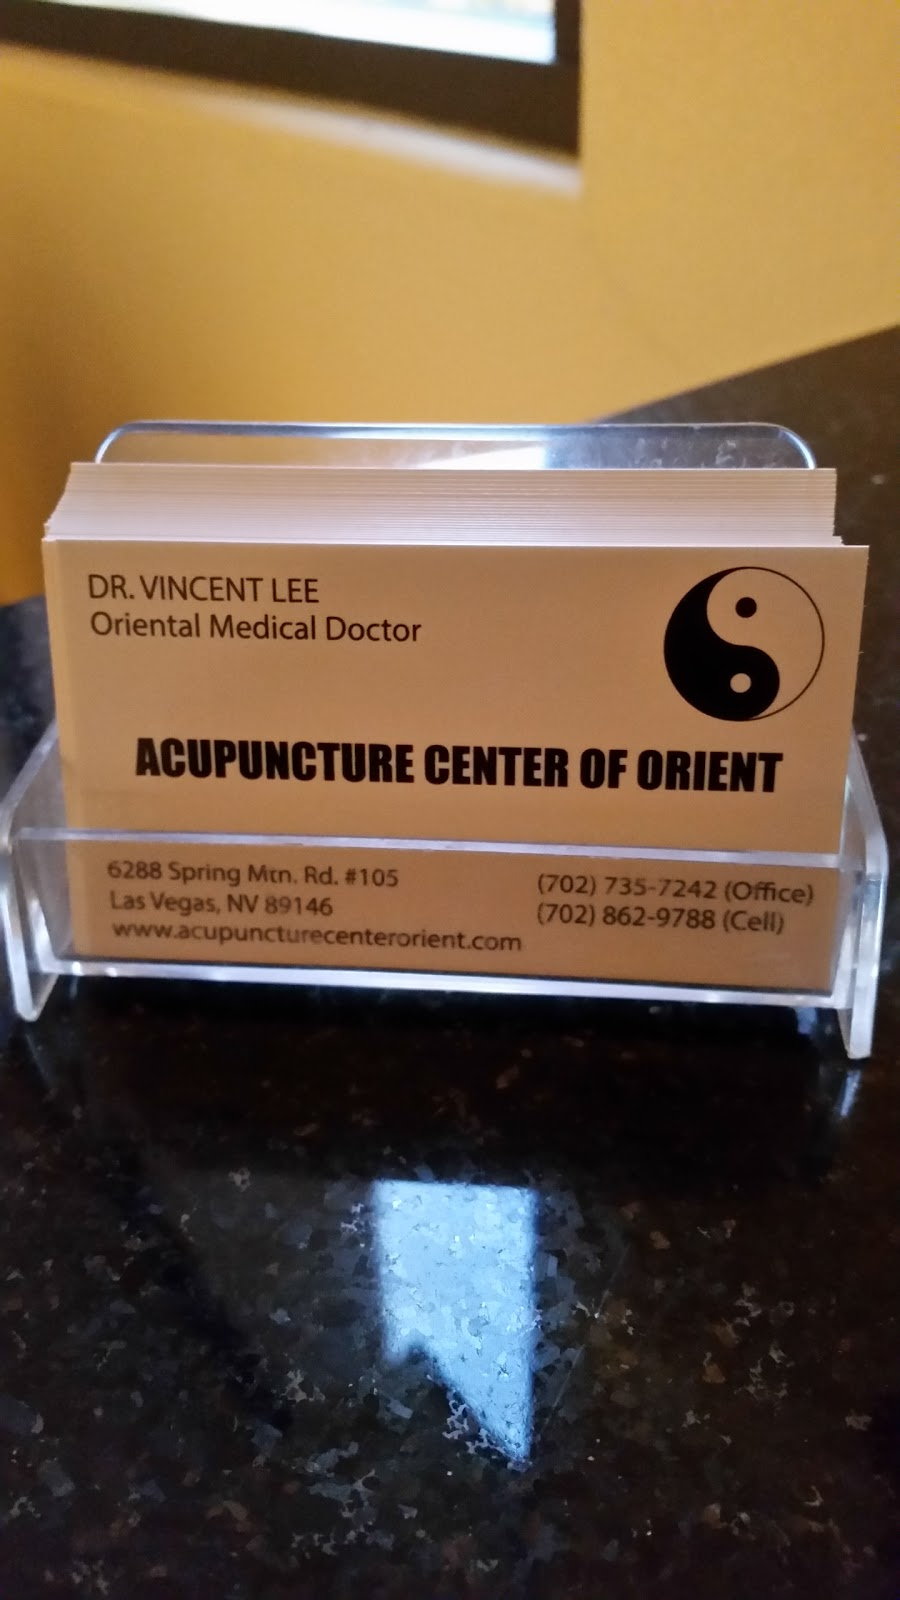 Acupuncture Center Of Orient